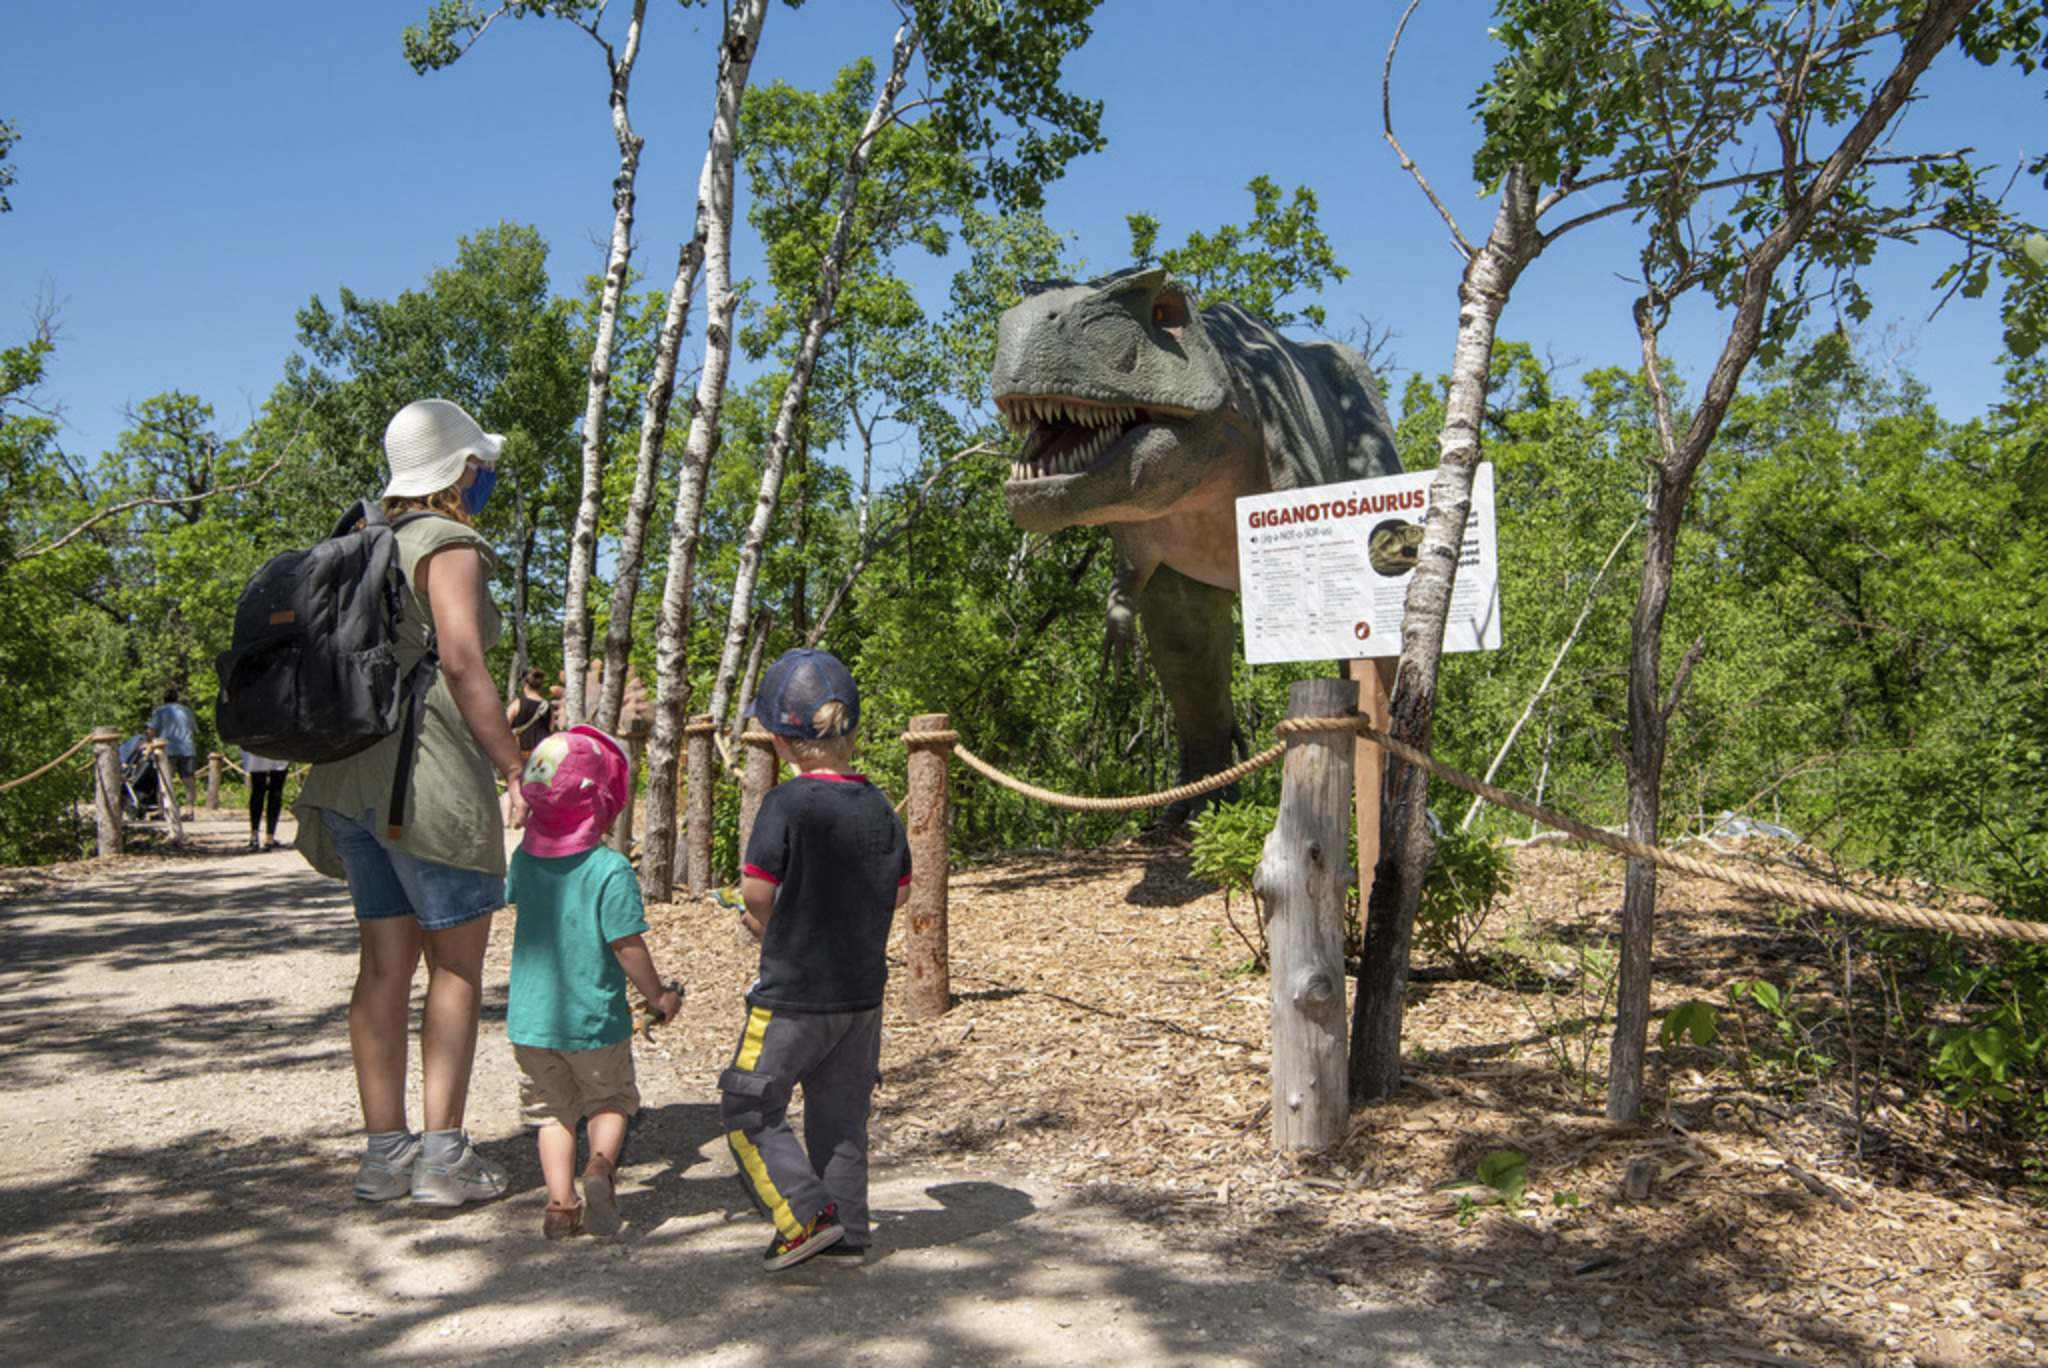 ALEX LUPUL / WINNIPEG FREE PRESS</p><p>Visitors to the Assiniboine Park Zoo take a sneak peek at a Giganotosaurus in the zoo's newest attraction, Dinosaurs Uncovered, in Winnipeg on Monday. The attraction features 17 life-size, animatronic dinosaurs along a forested trail in the northwest area of the Zoo. The zoo will be open to the public again starting Tuesday.</p>